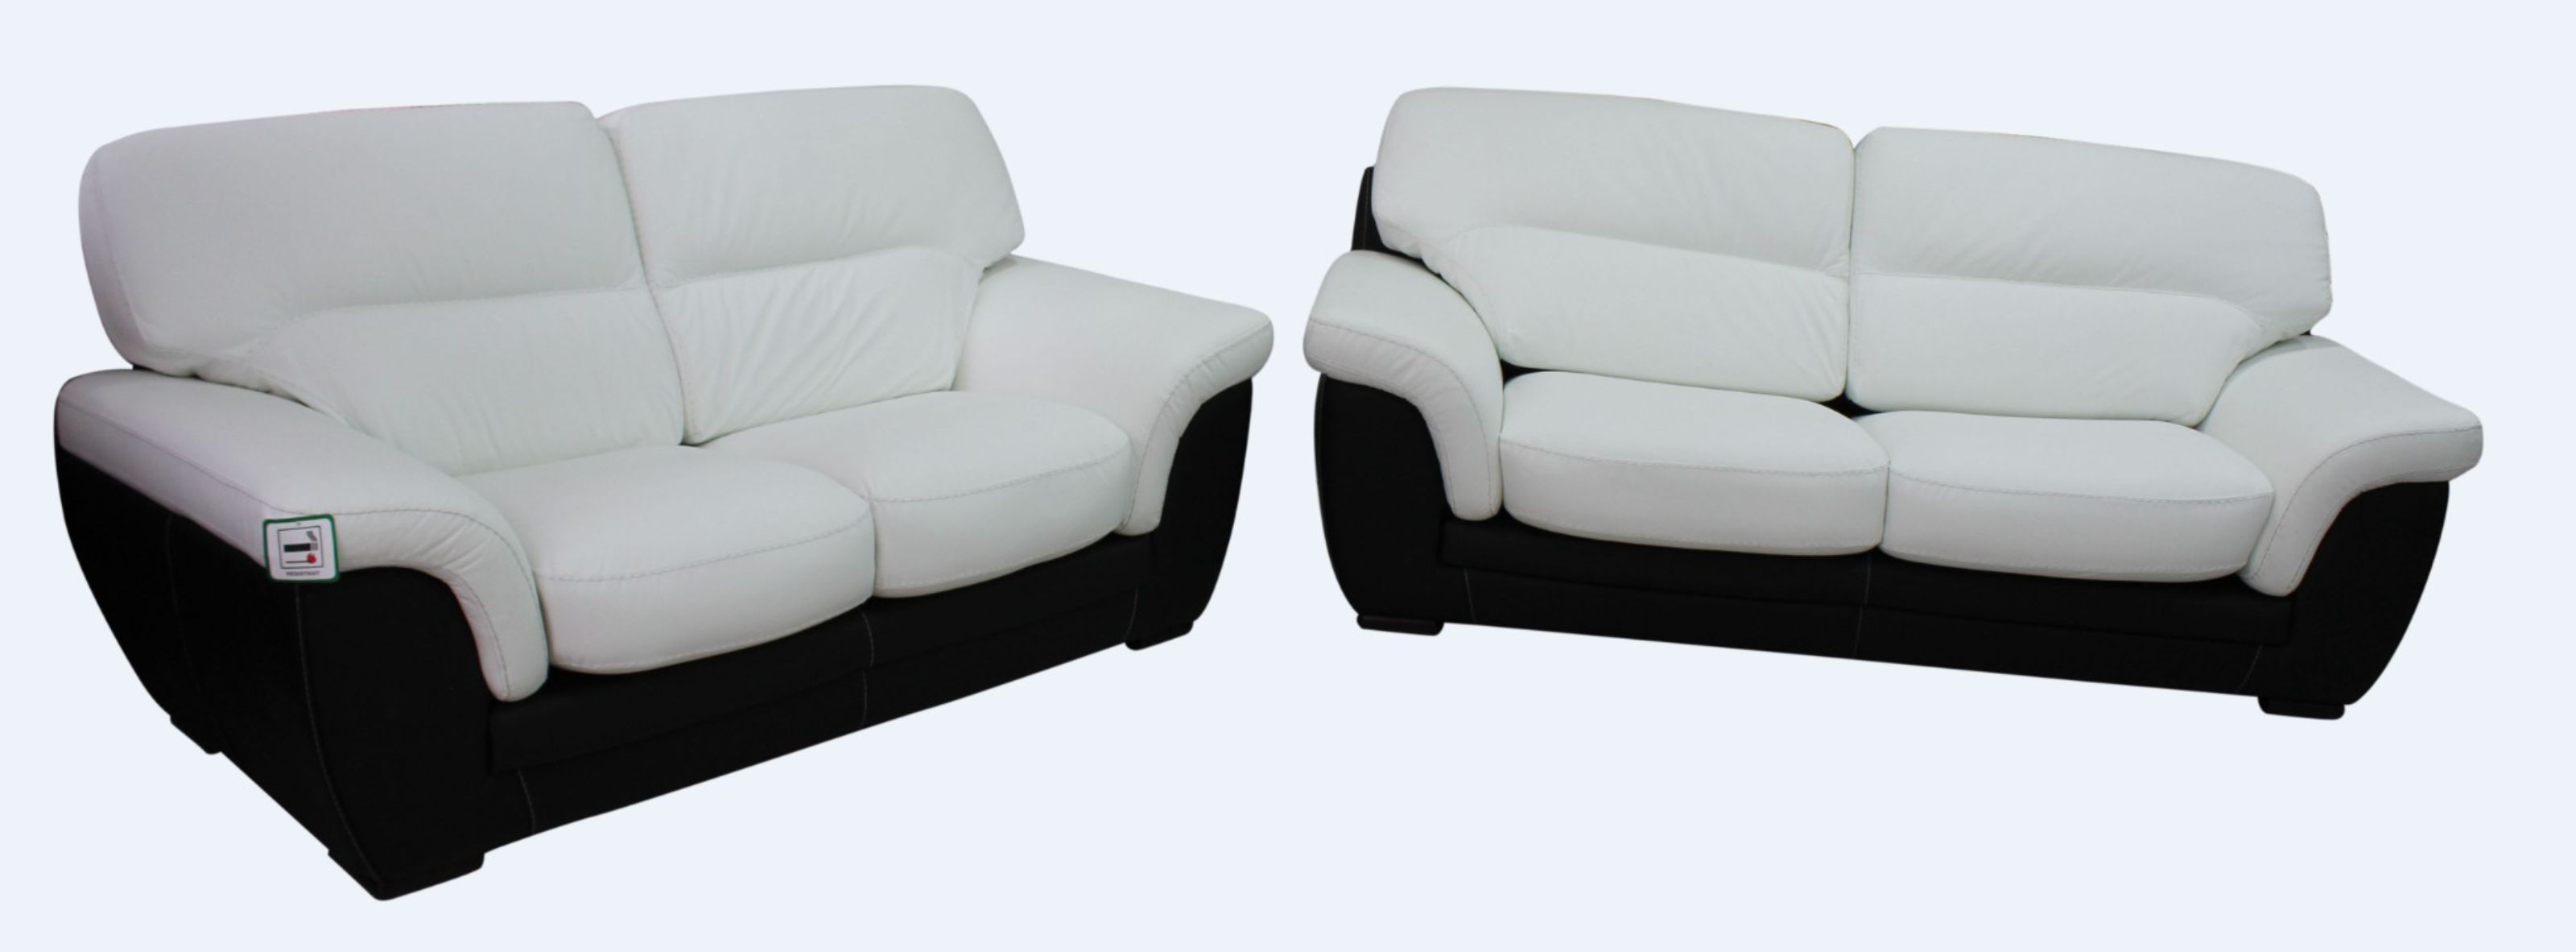 Daniel 3+2 Contemporary Italian Leather Sofa Suite Black White